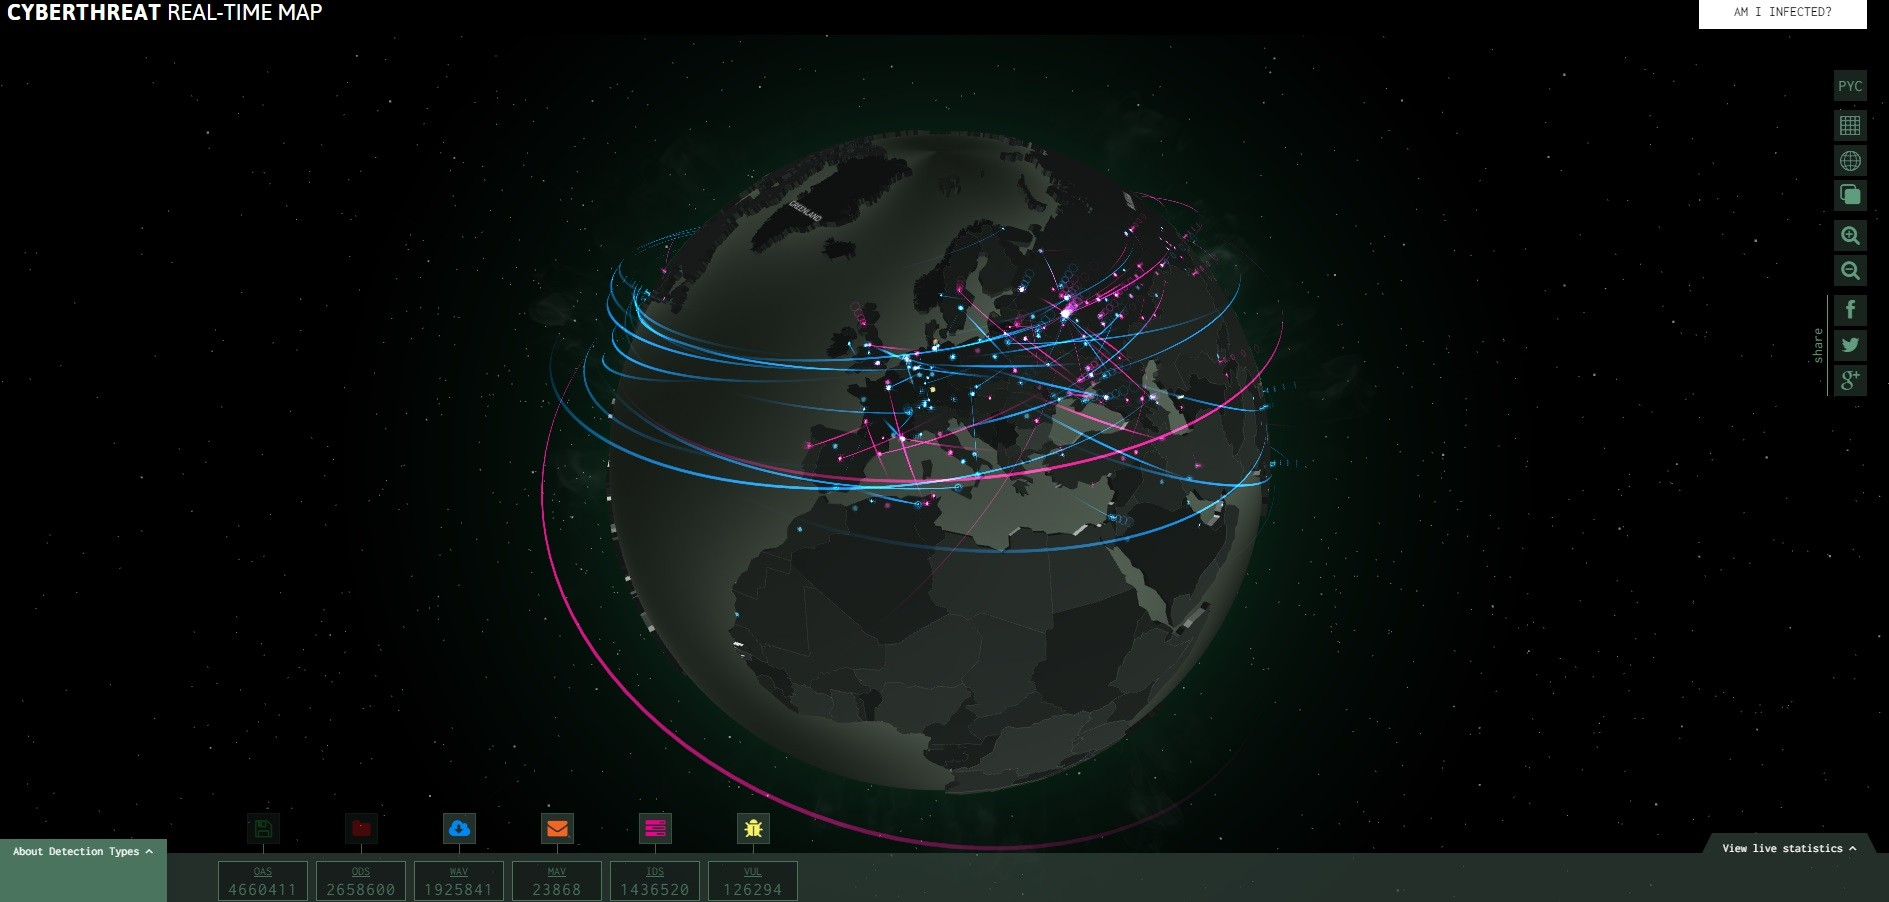 Cyber attack maps are a trove of information threat map from norse fireeyes threatmap kasperskys cyberthreat map interactive globe gumiabroncs Choice Image